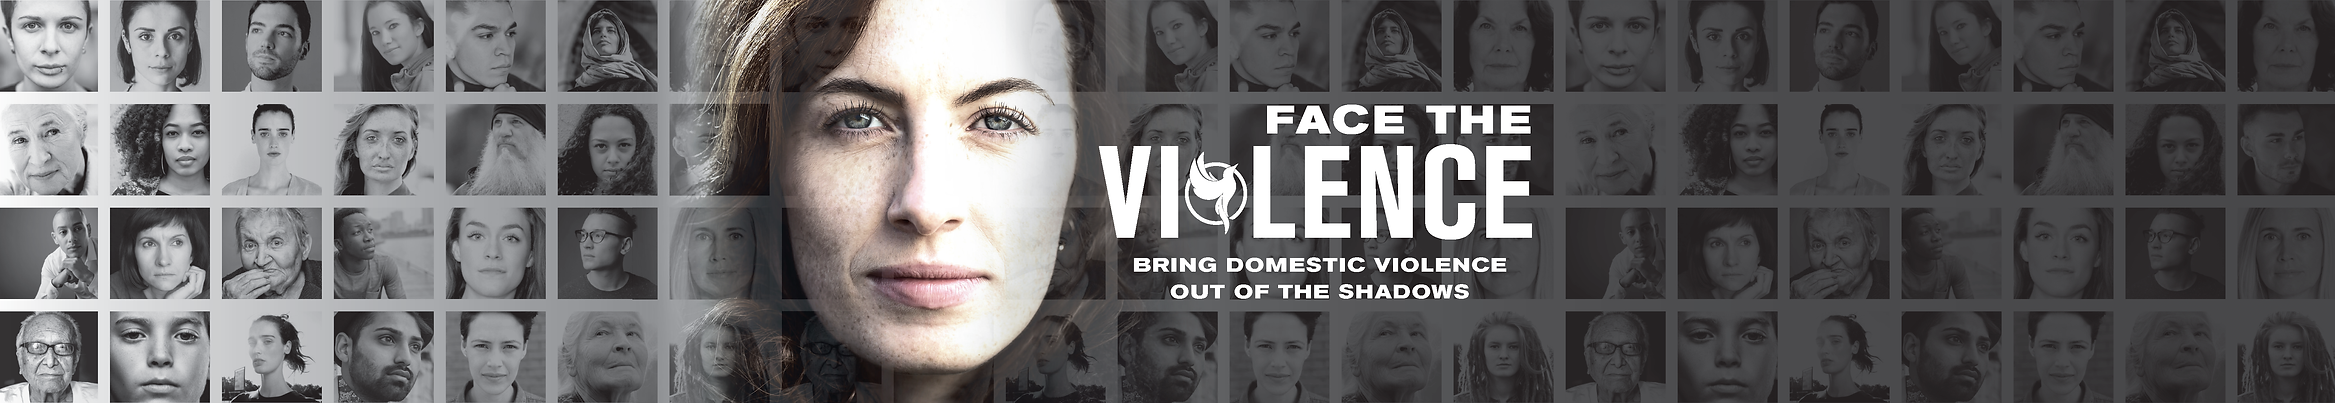 TFC_FacetheViolence7faceoptionsWIDE2logo2.png